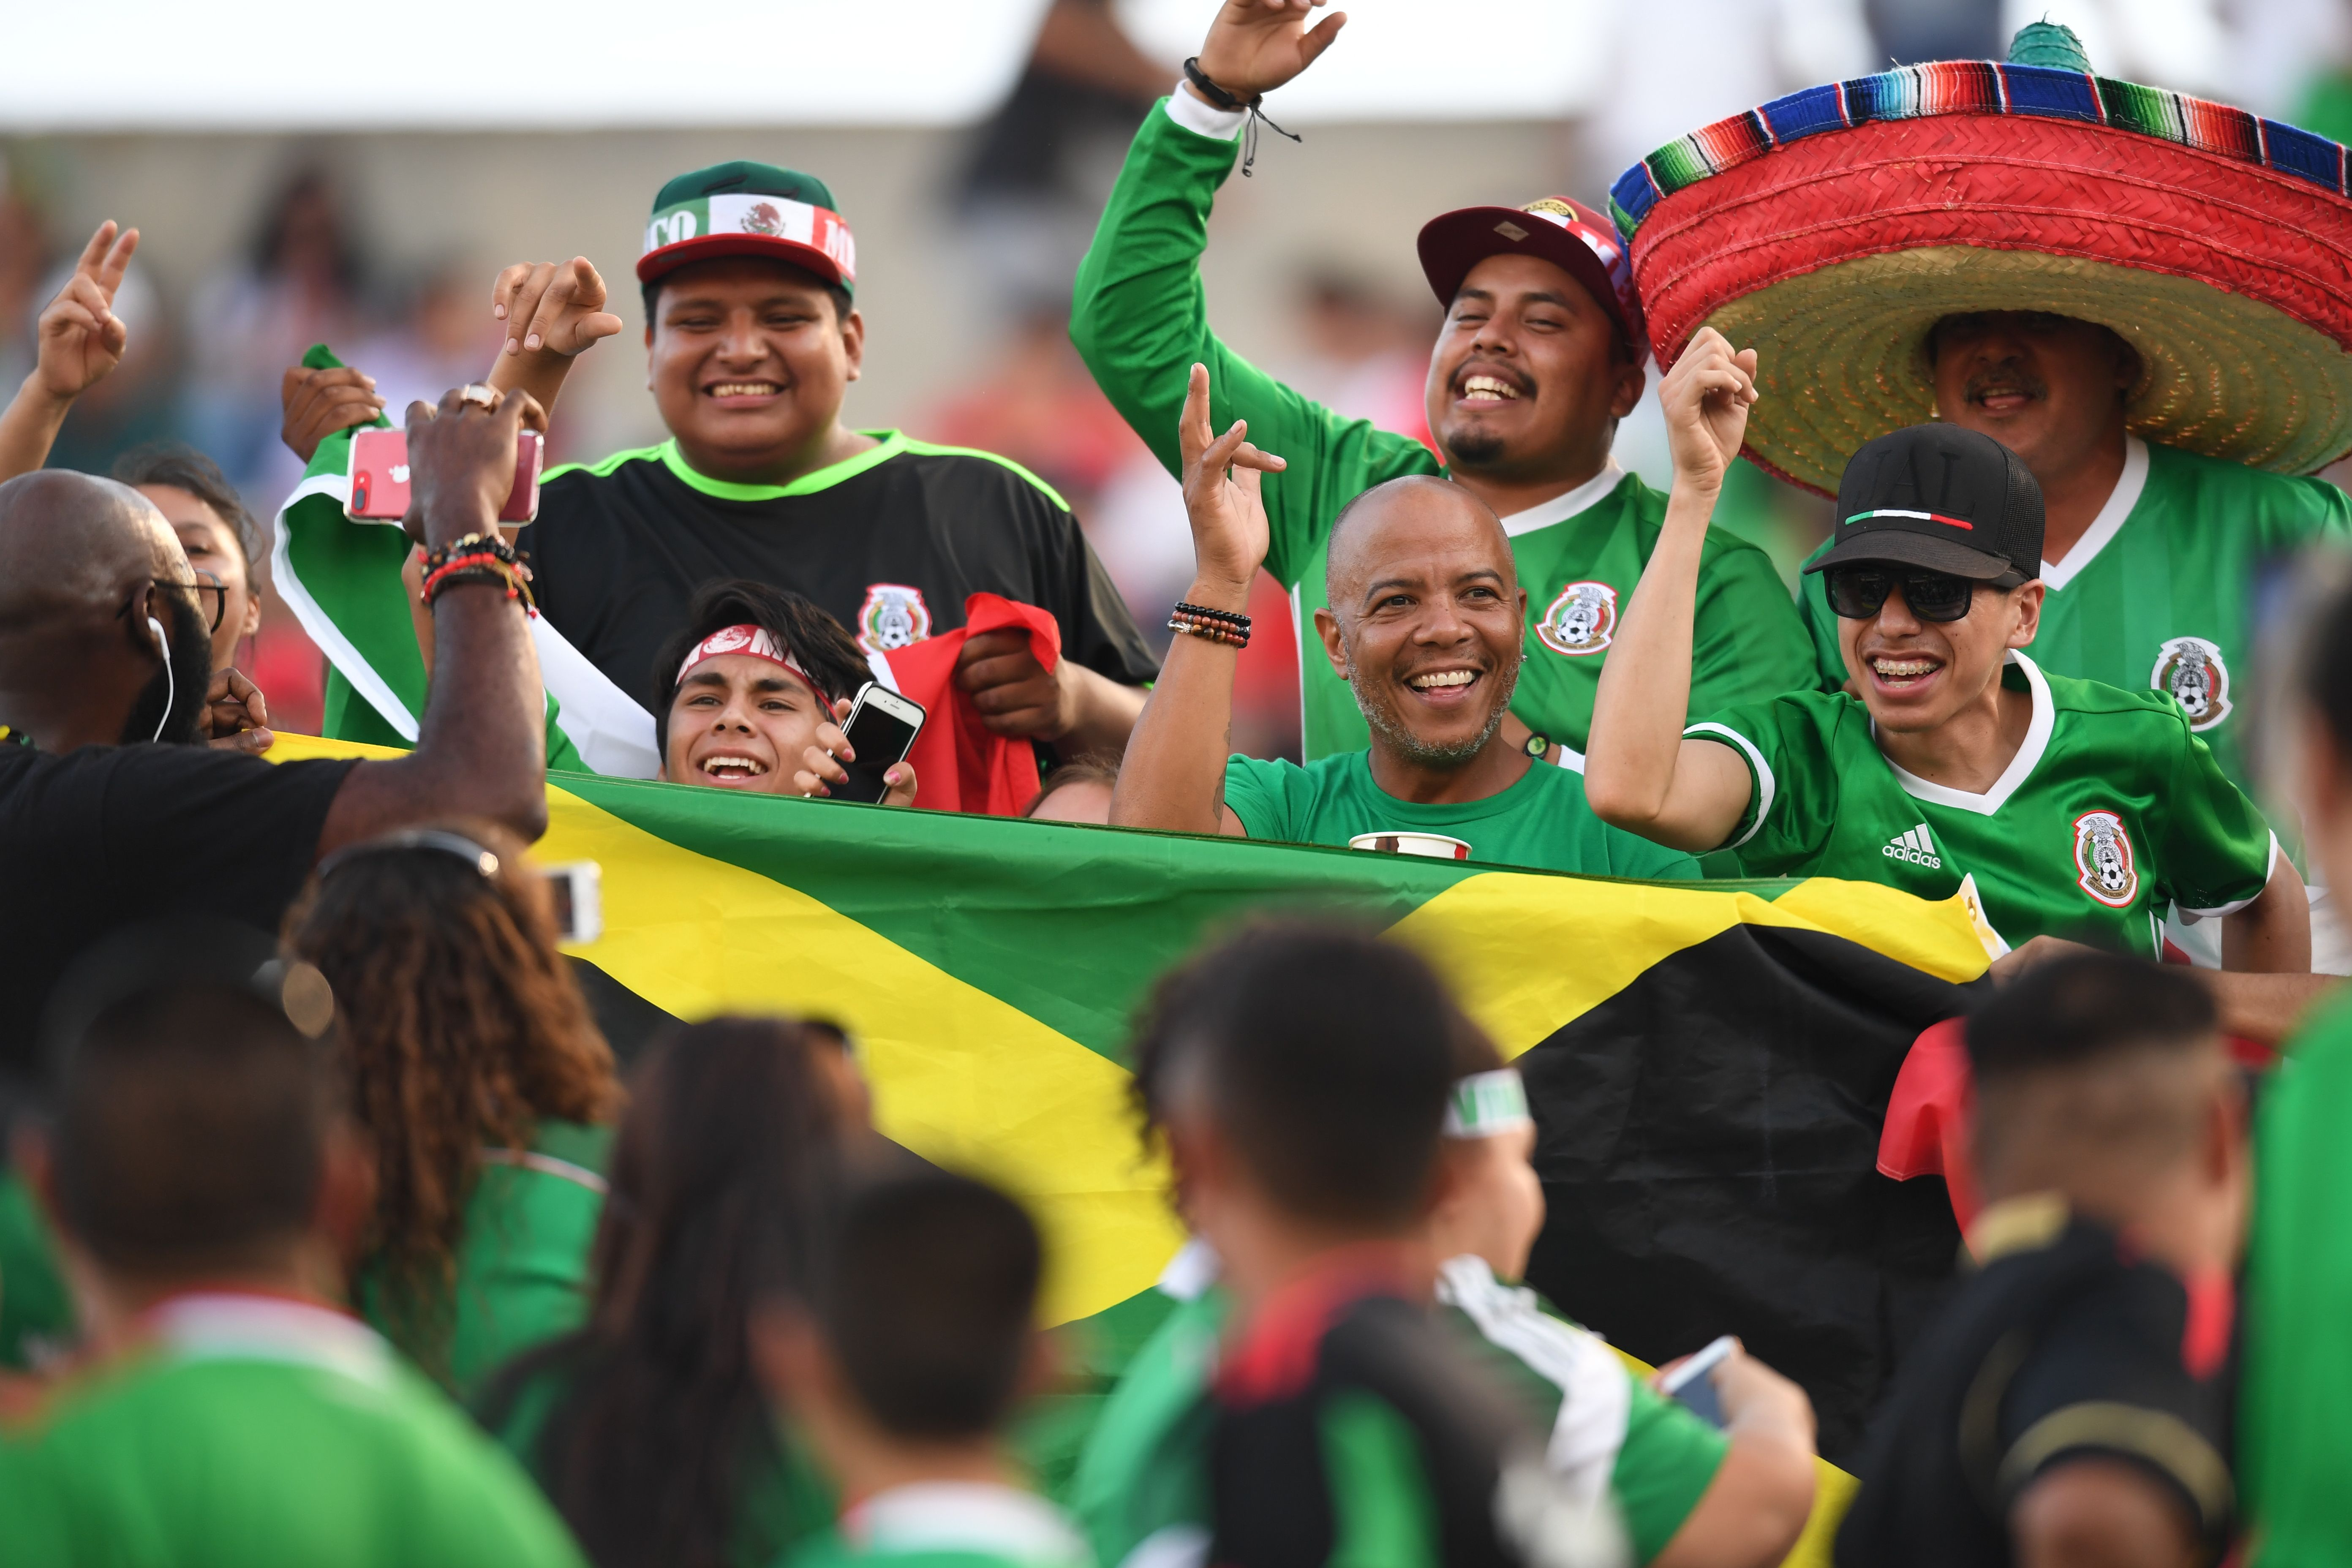 FBL-CONCACAF-GOLD CUP-JAM-MEX